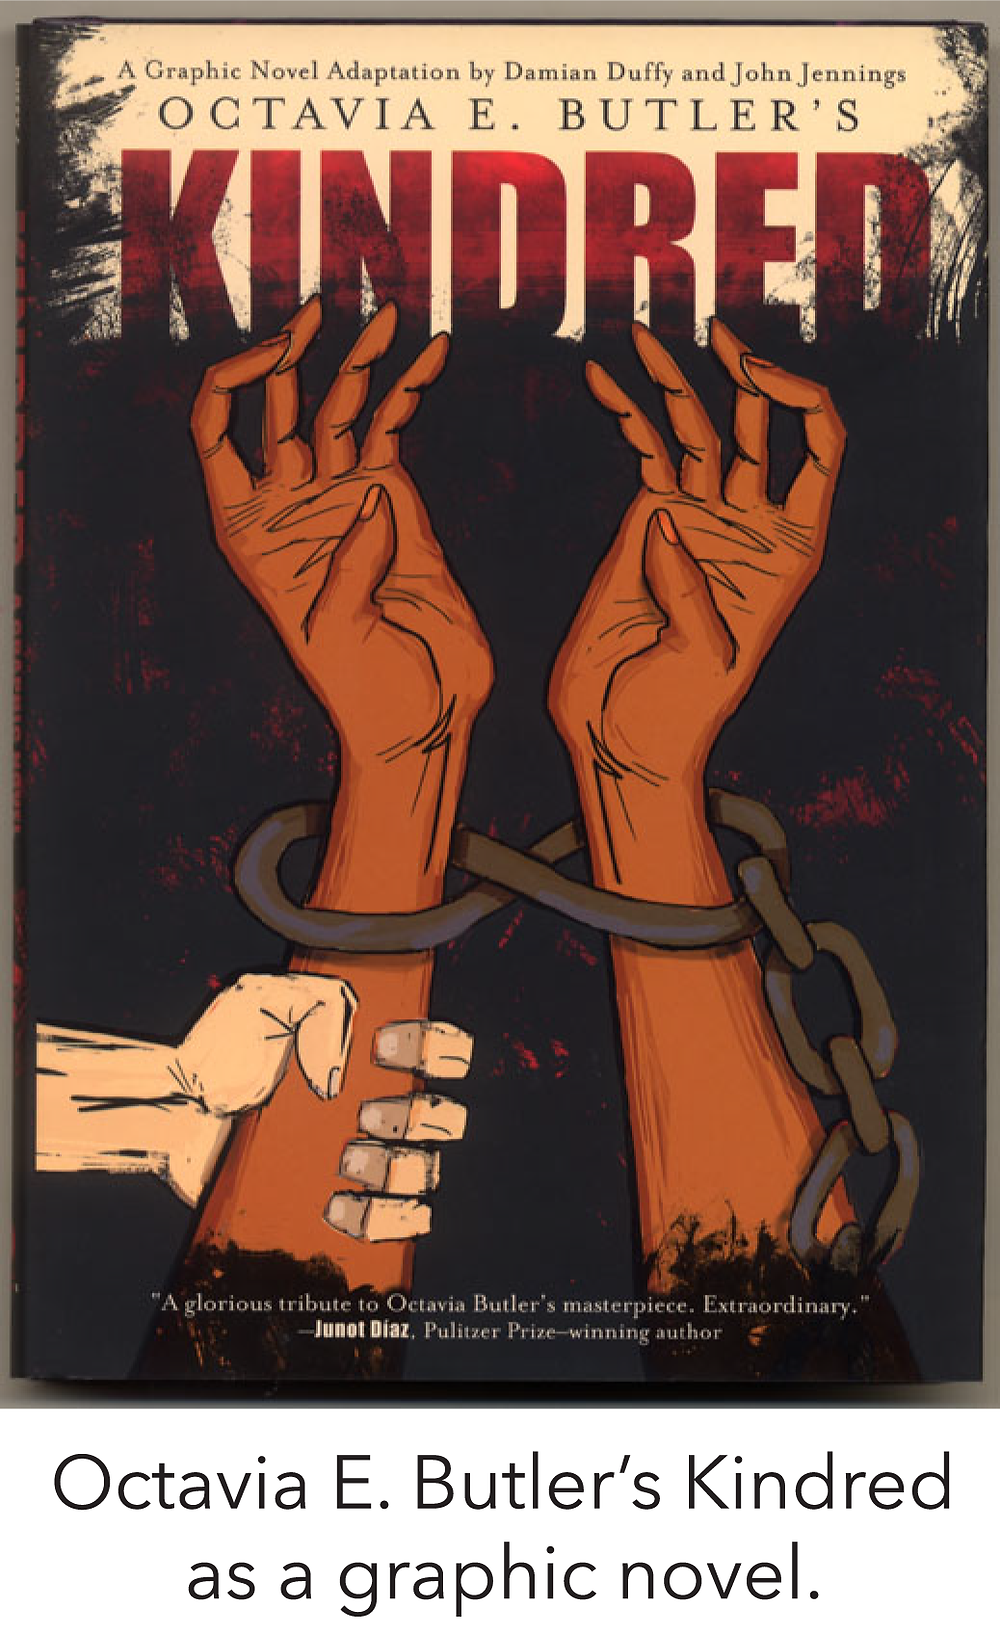 Octavia E. Butler's Kindred as a graphic novel